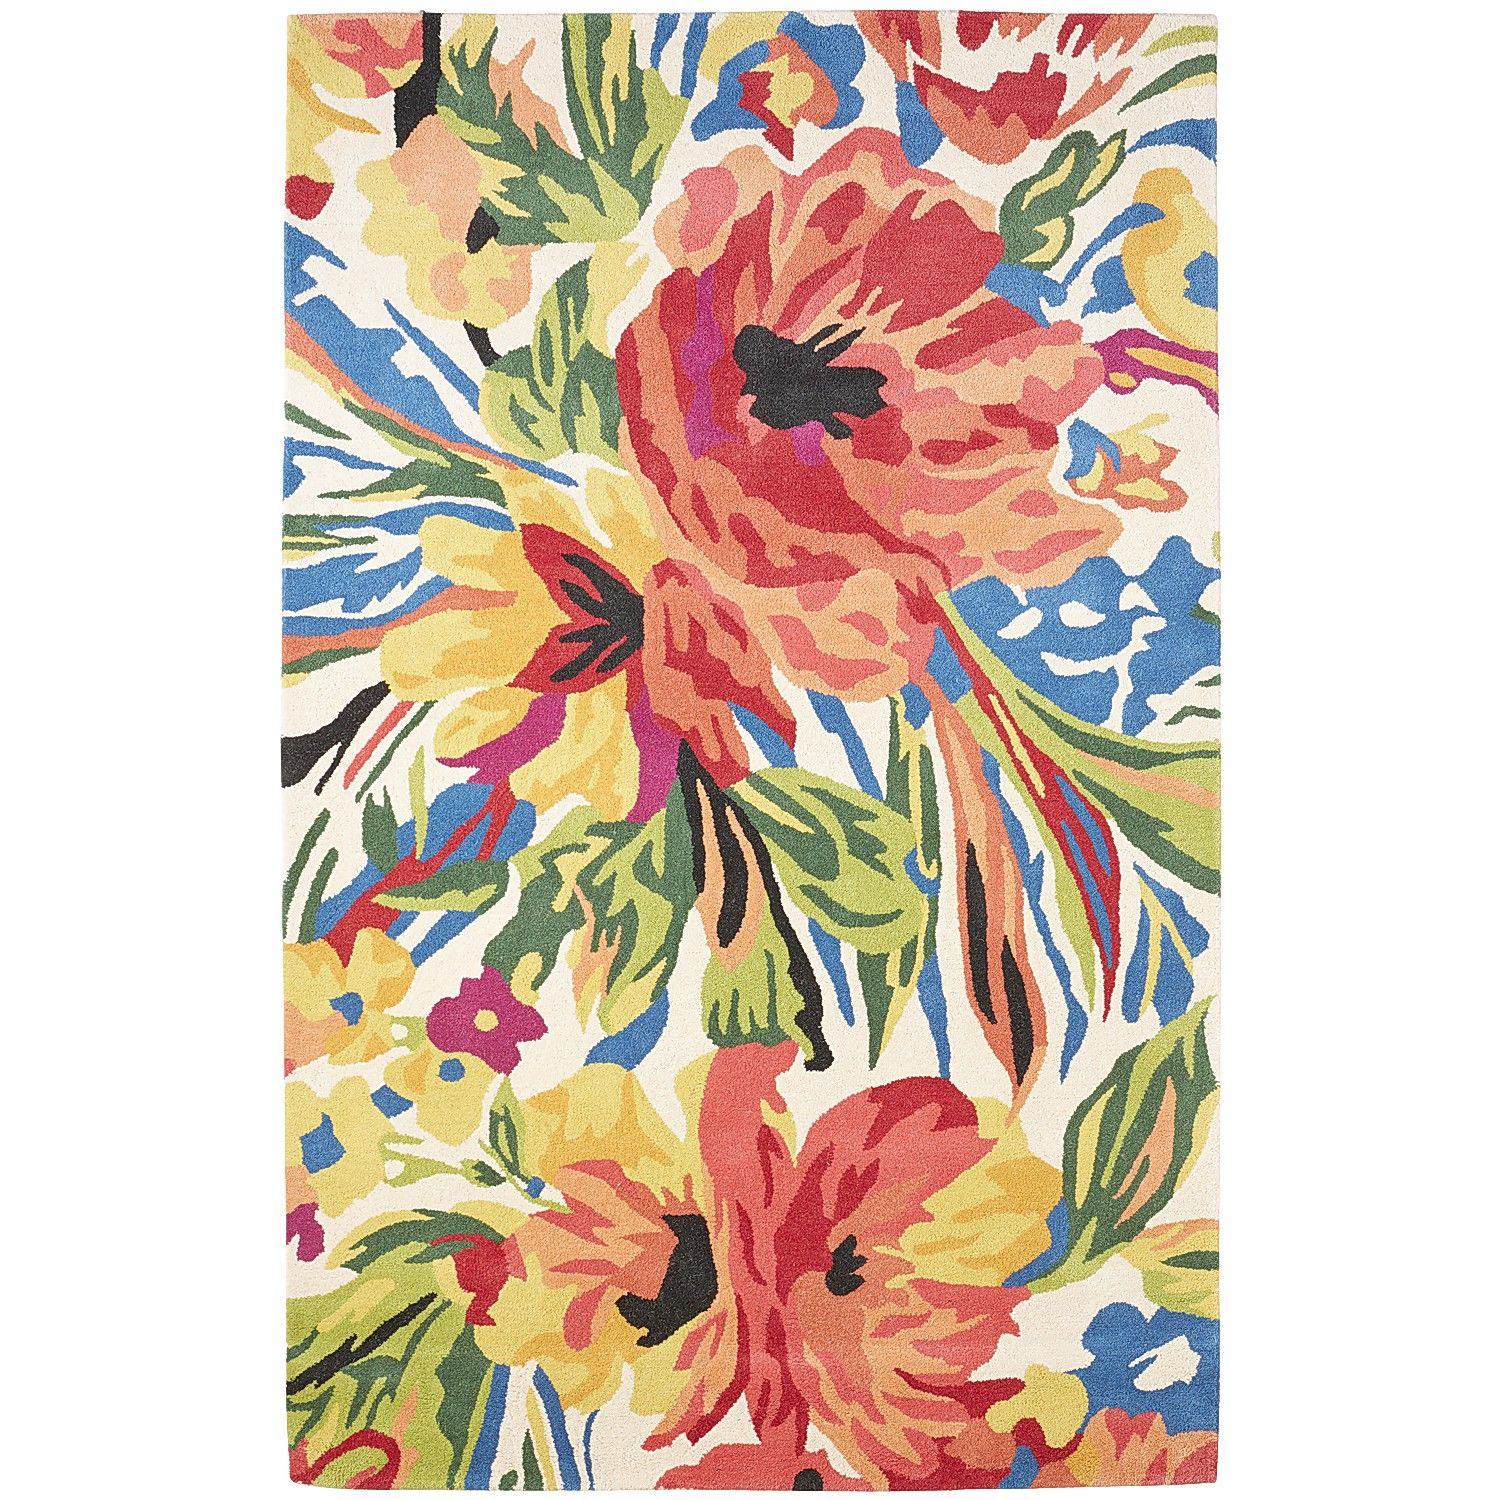 Multi Colored Talise Floral Wool Rug 8x10 Cool Rugs Floral